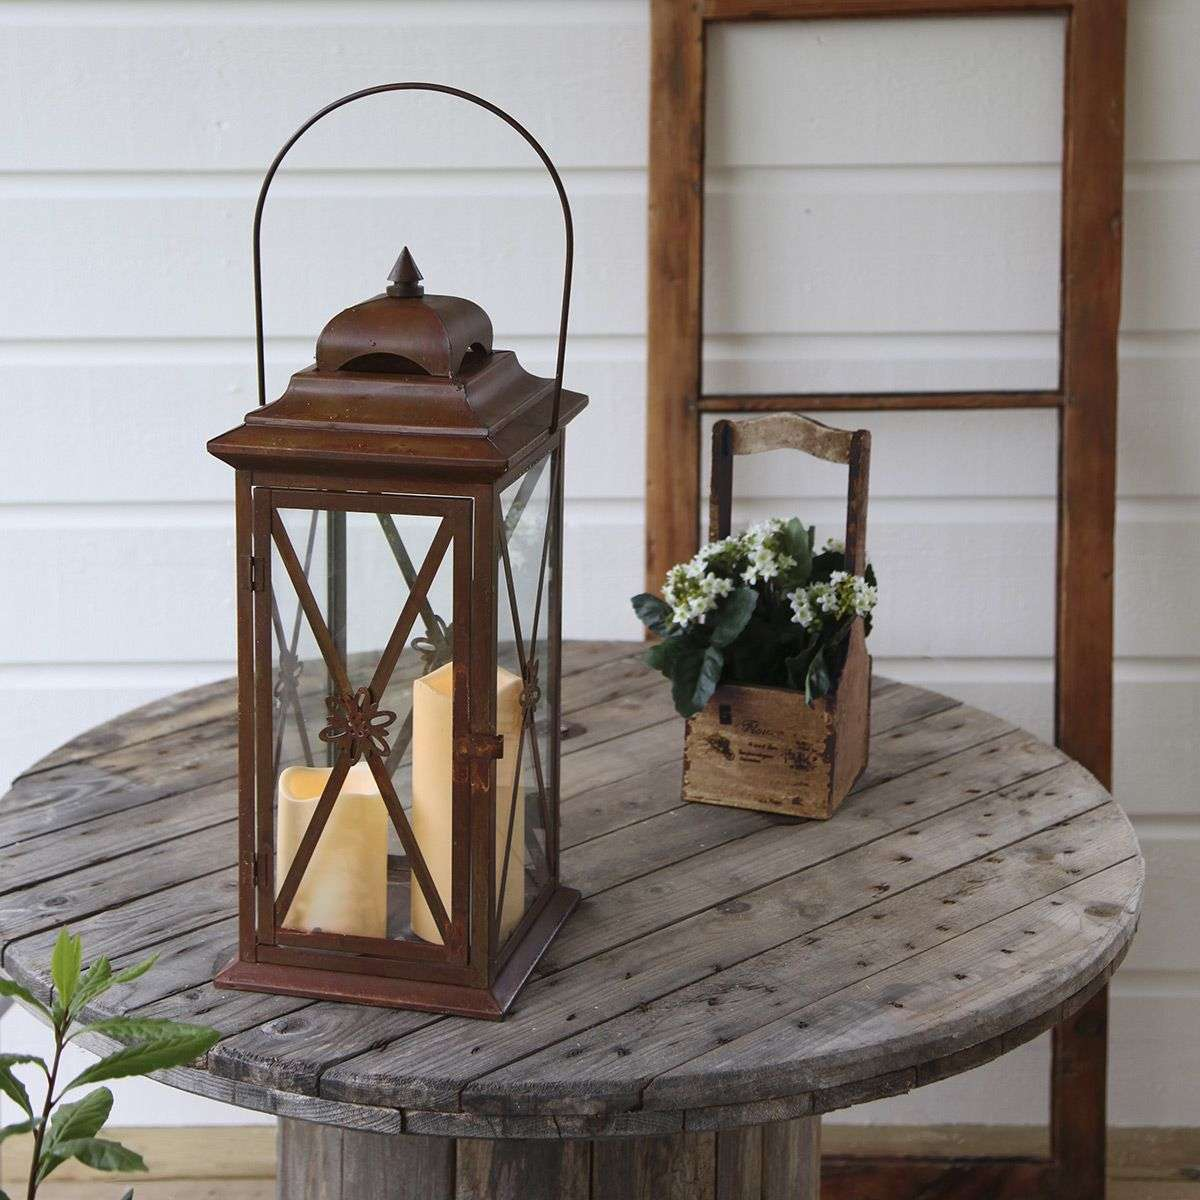 Rust-copper-coloured Lantern with 2 LED candles-1522552-31